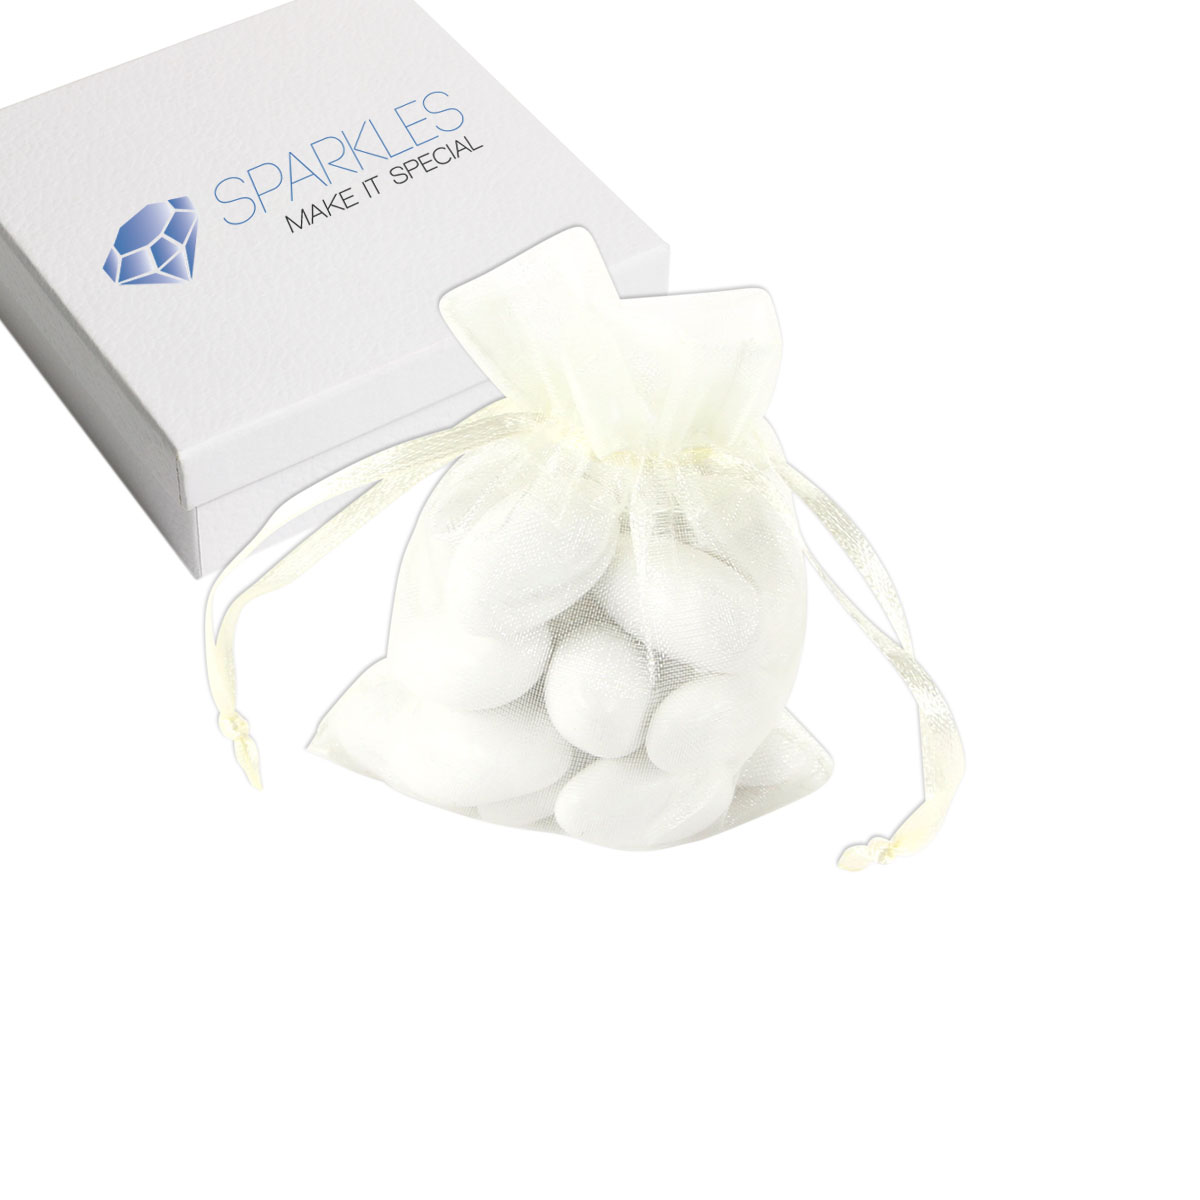 25 x 3quotx4quot organza wedding favor bags party decoration for Wedding favor gift bags